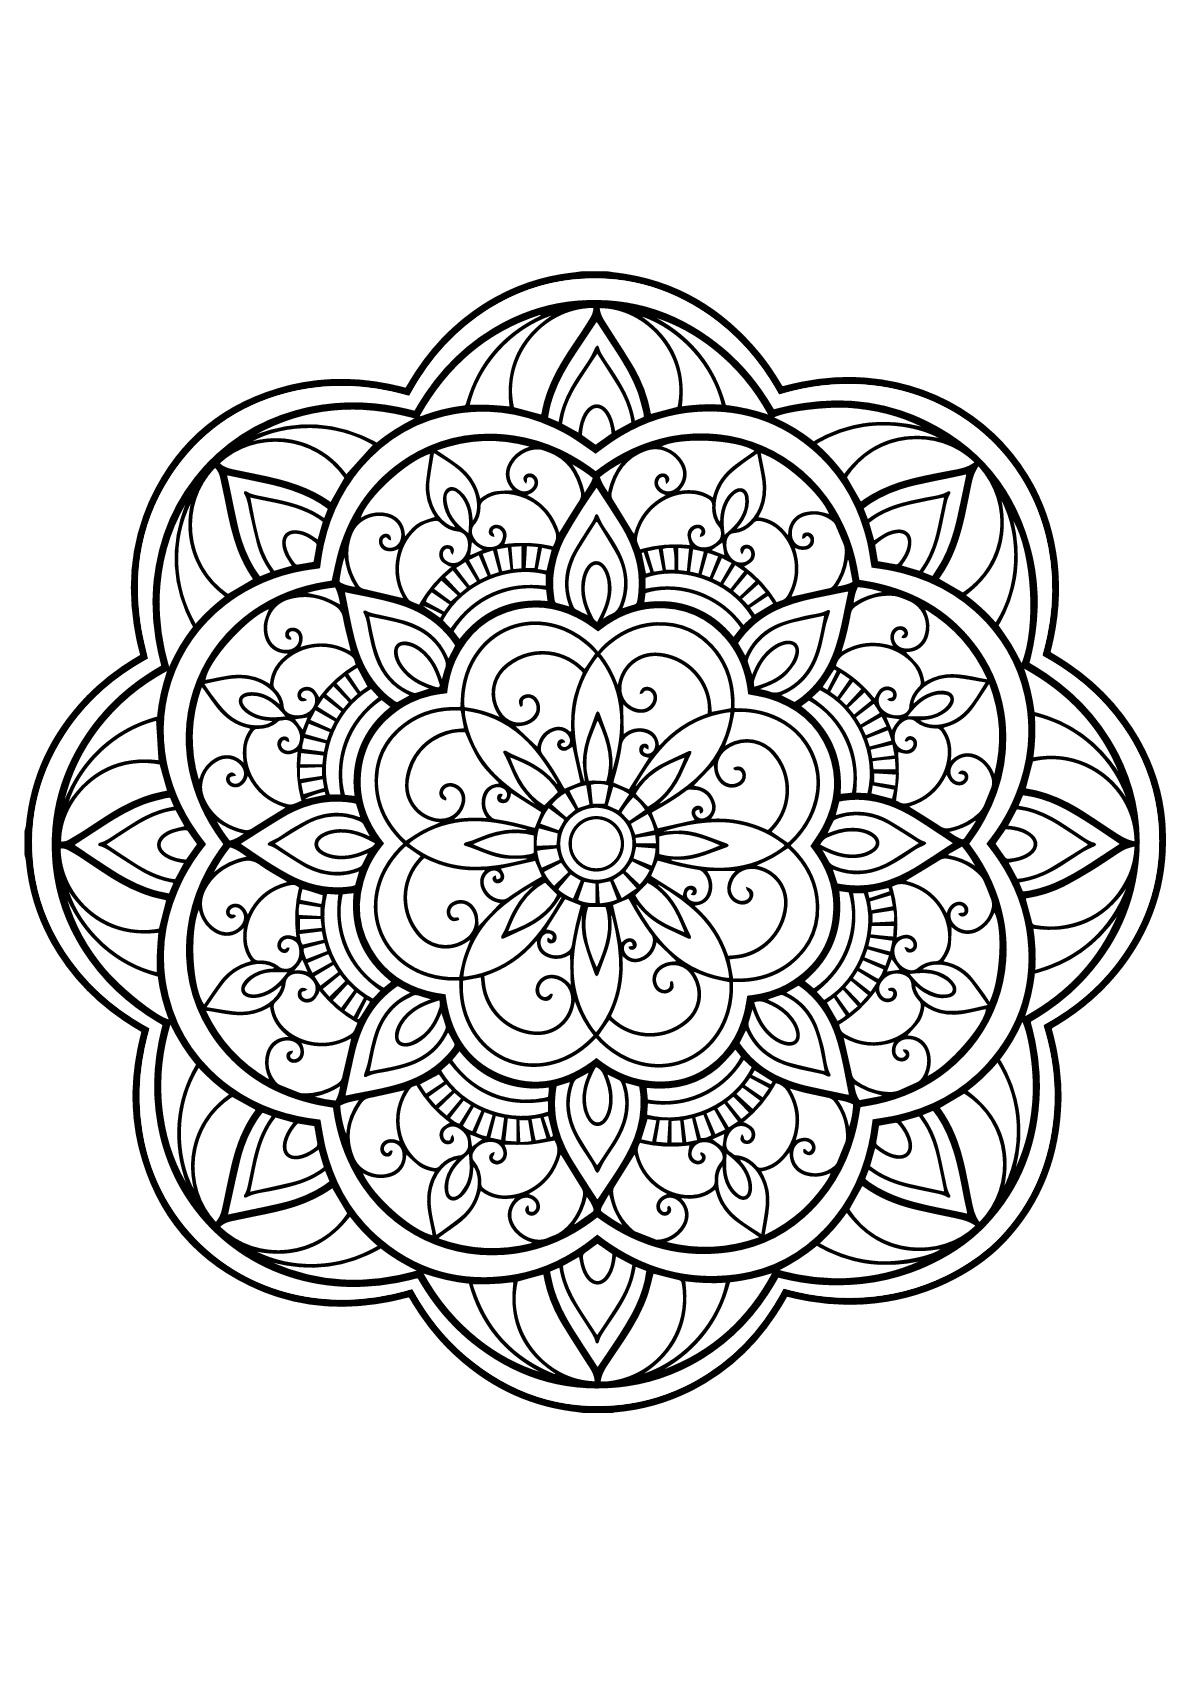 free printable mandalas to color for adults mandala adult coloring pages printable coloring home for adults color free to printable mandalas